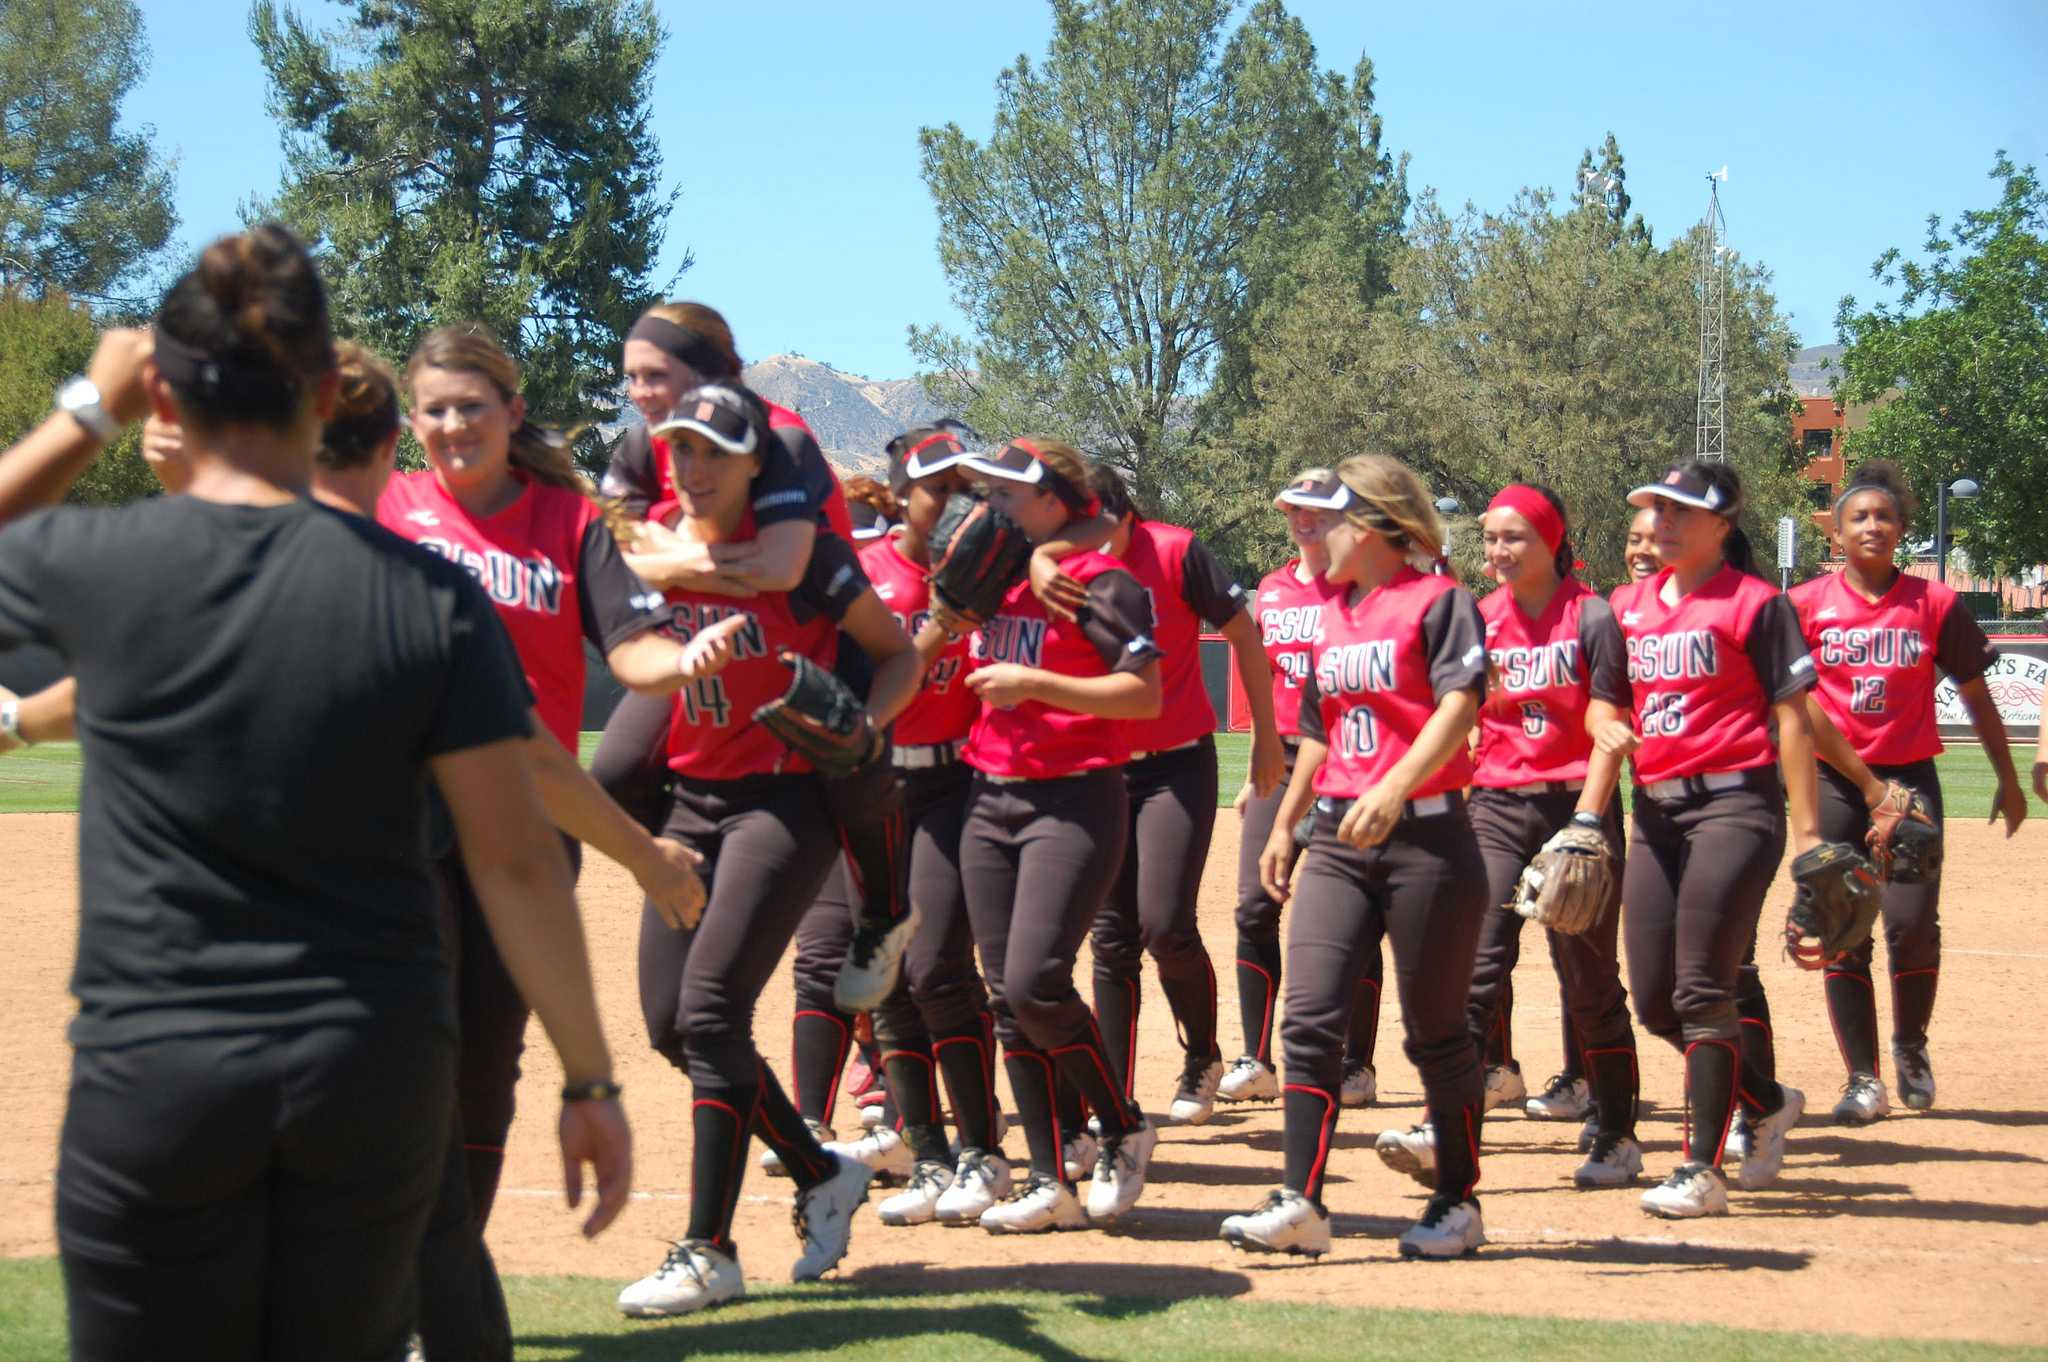 The+CSUN+softball+team+celebrates+after+defeating+the+University+of+Hawai%27i+2-0+in+the+first+game+of+their+doubleheader+on+Saturday%2C+May+2.+Cladellain+David%2FPhoto+Editor